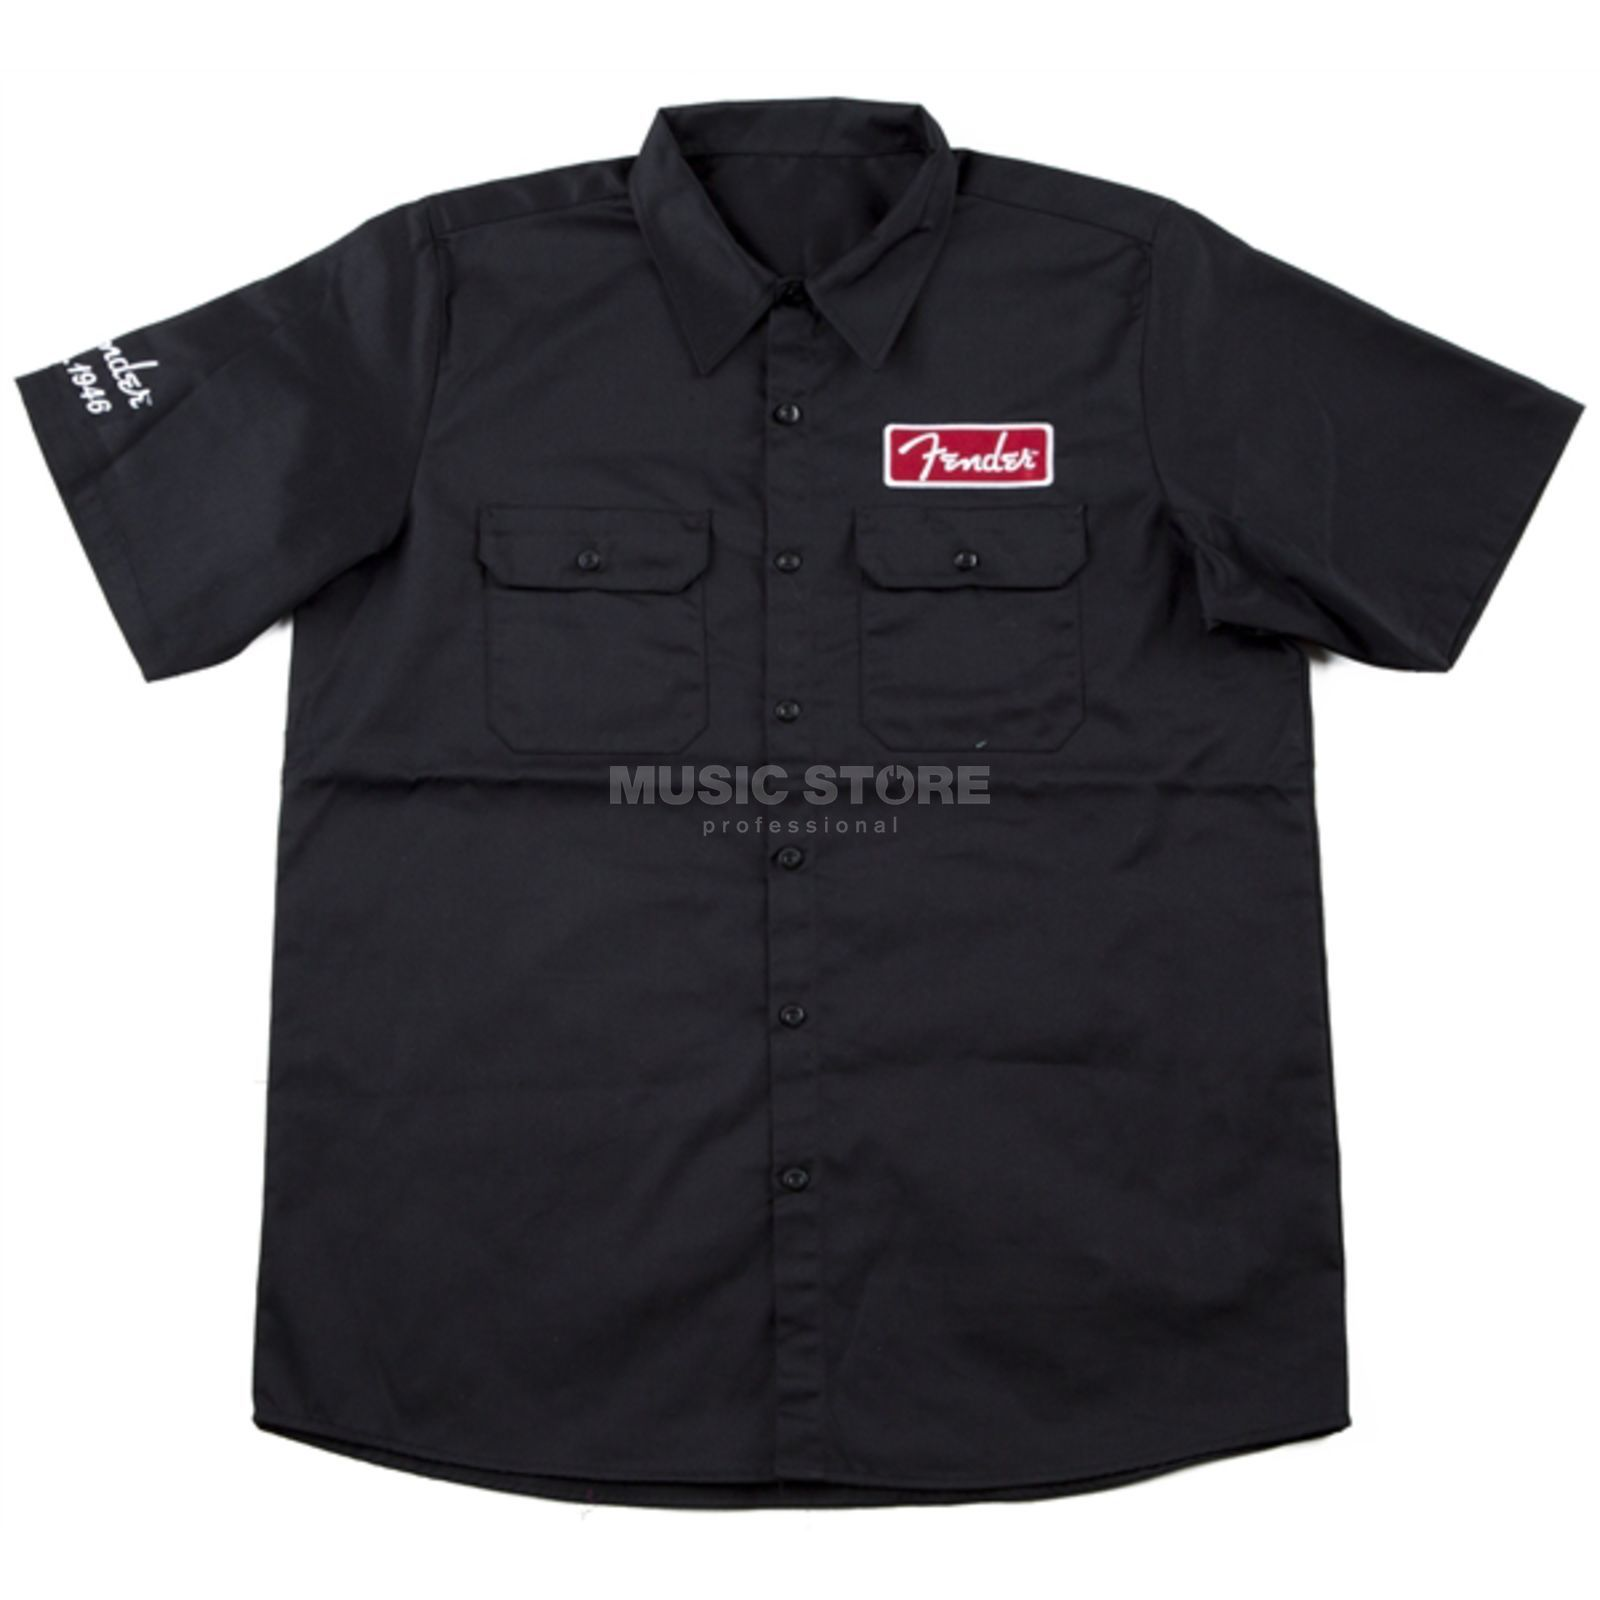 Fender Workshirt XXL Black Product Image